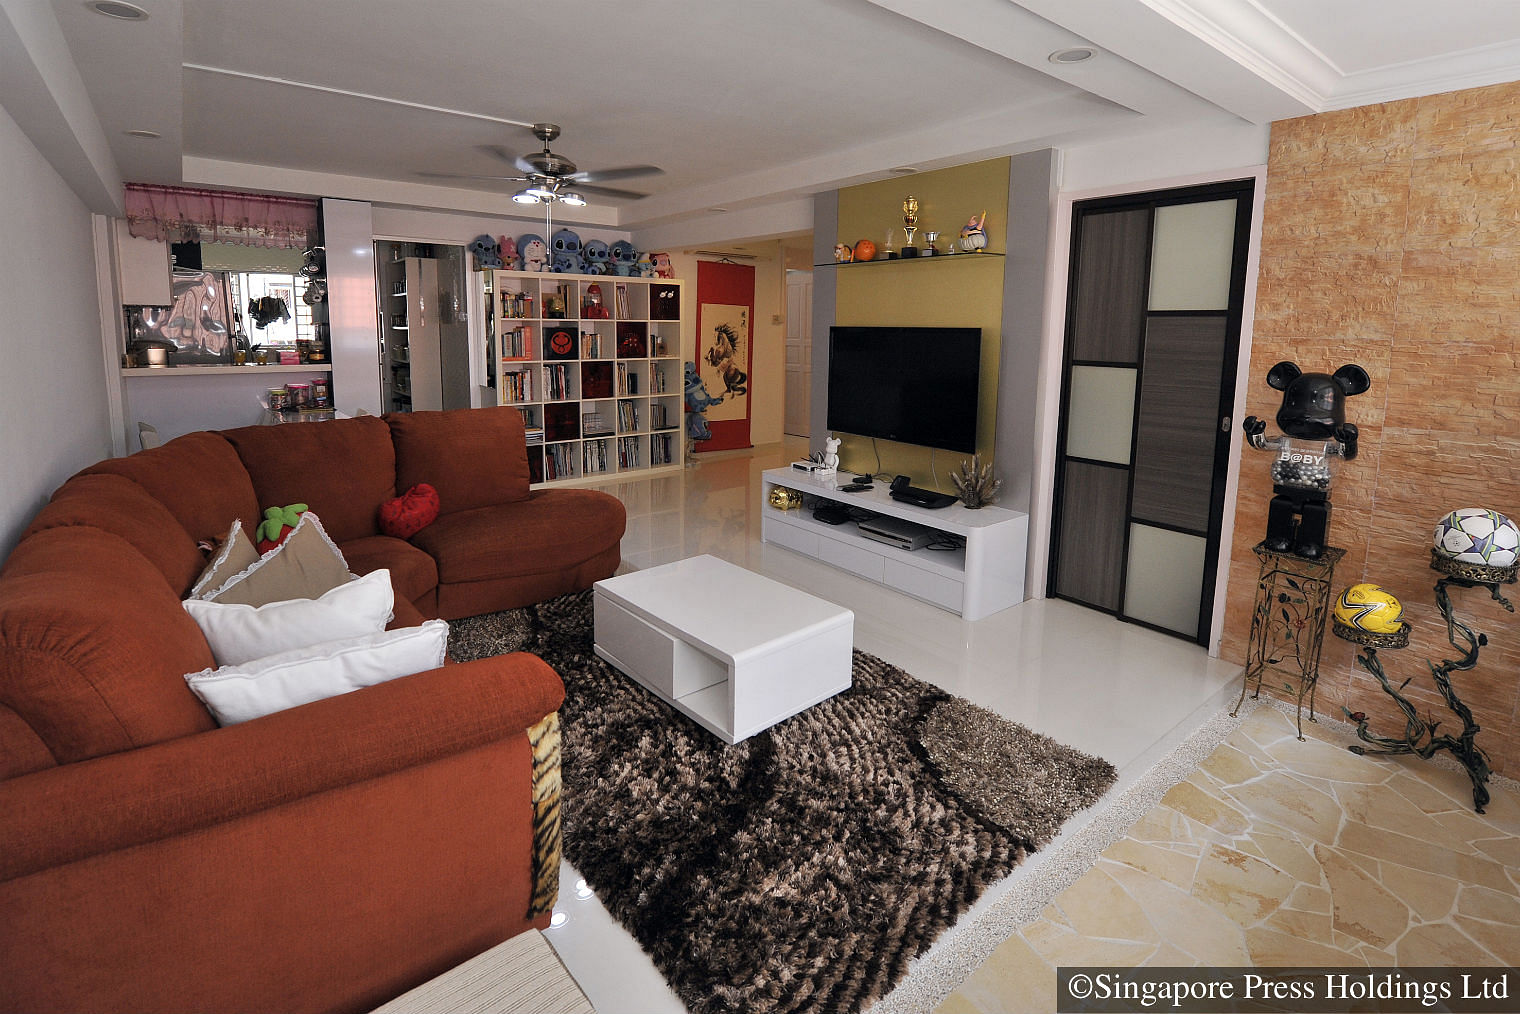 TV Host Lee Tengs HDB Home Is Filled With Shoes Toys And Clothes